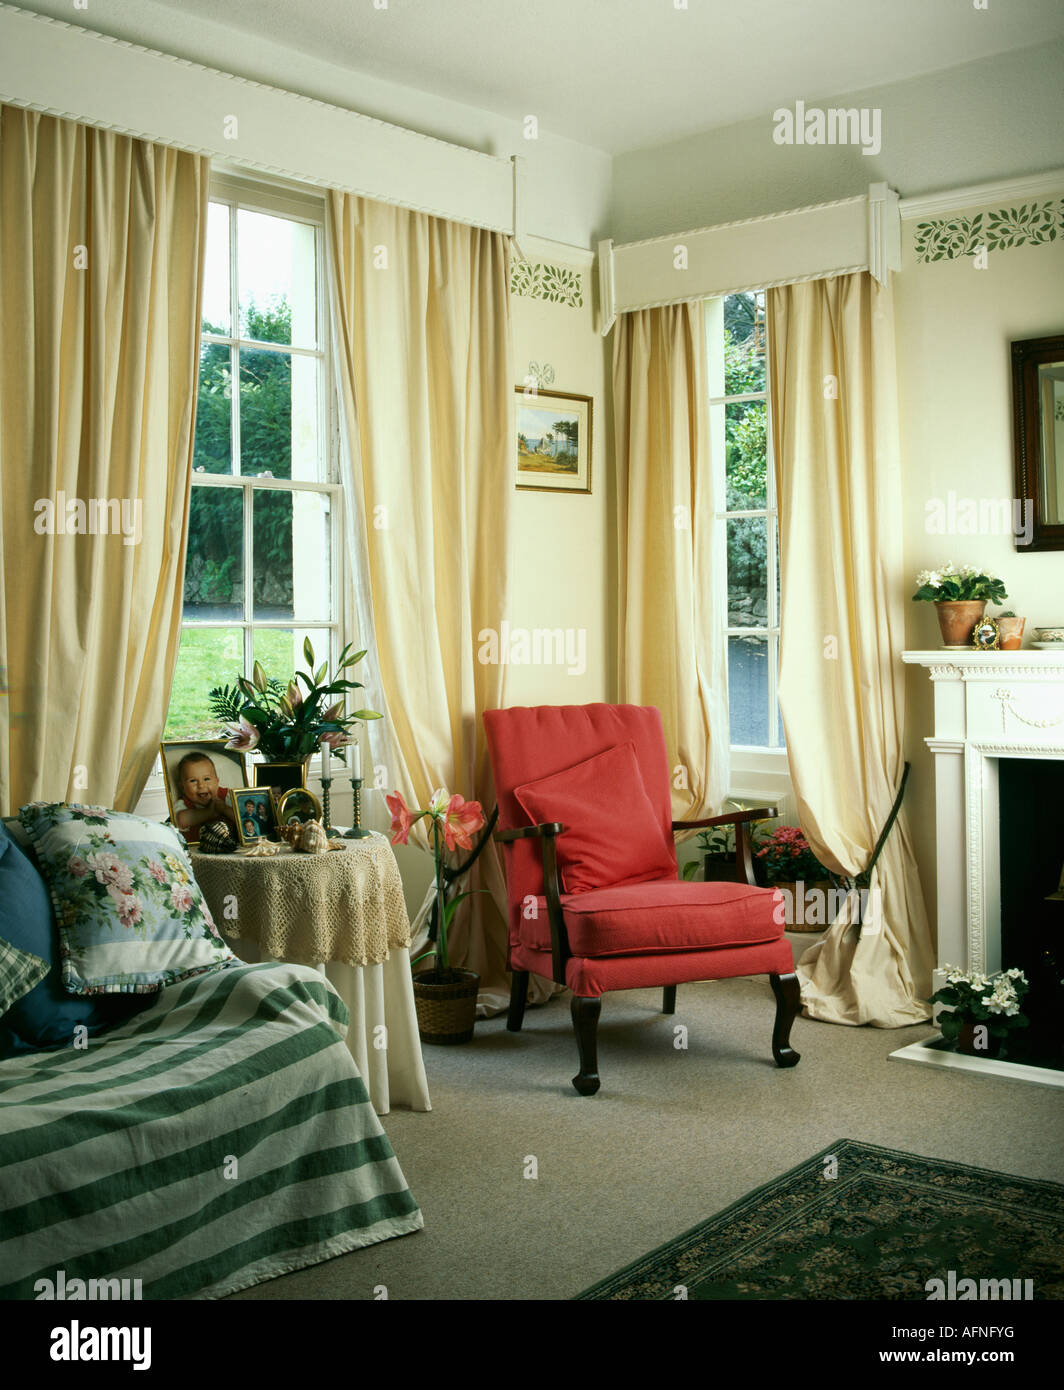 Red Armchair And Cream Curtains With White Wooden Pelmet In Nineties Living Room